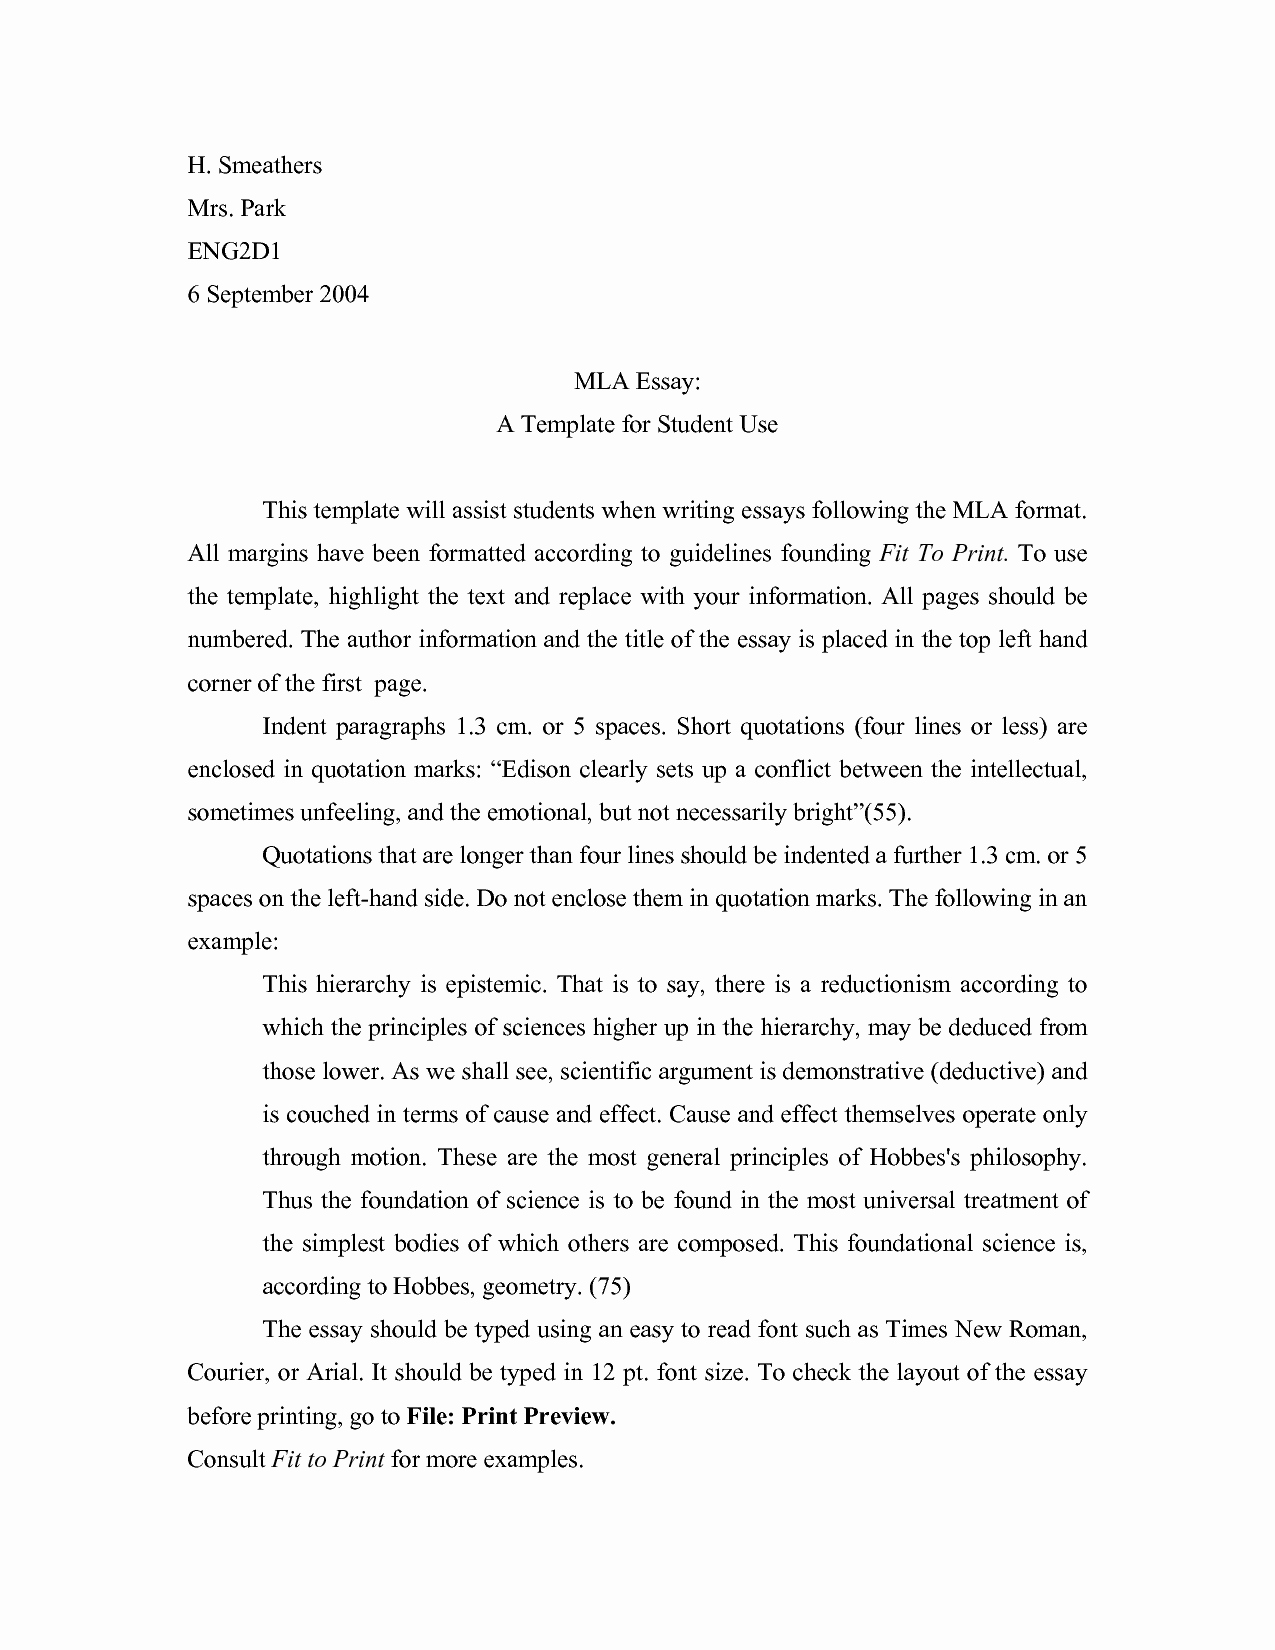 Mla format for Research Papers Awesome Mla format Template